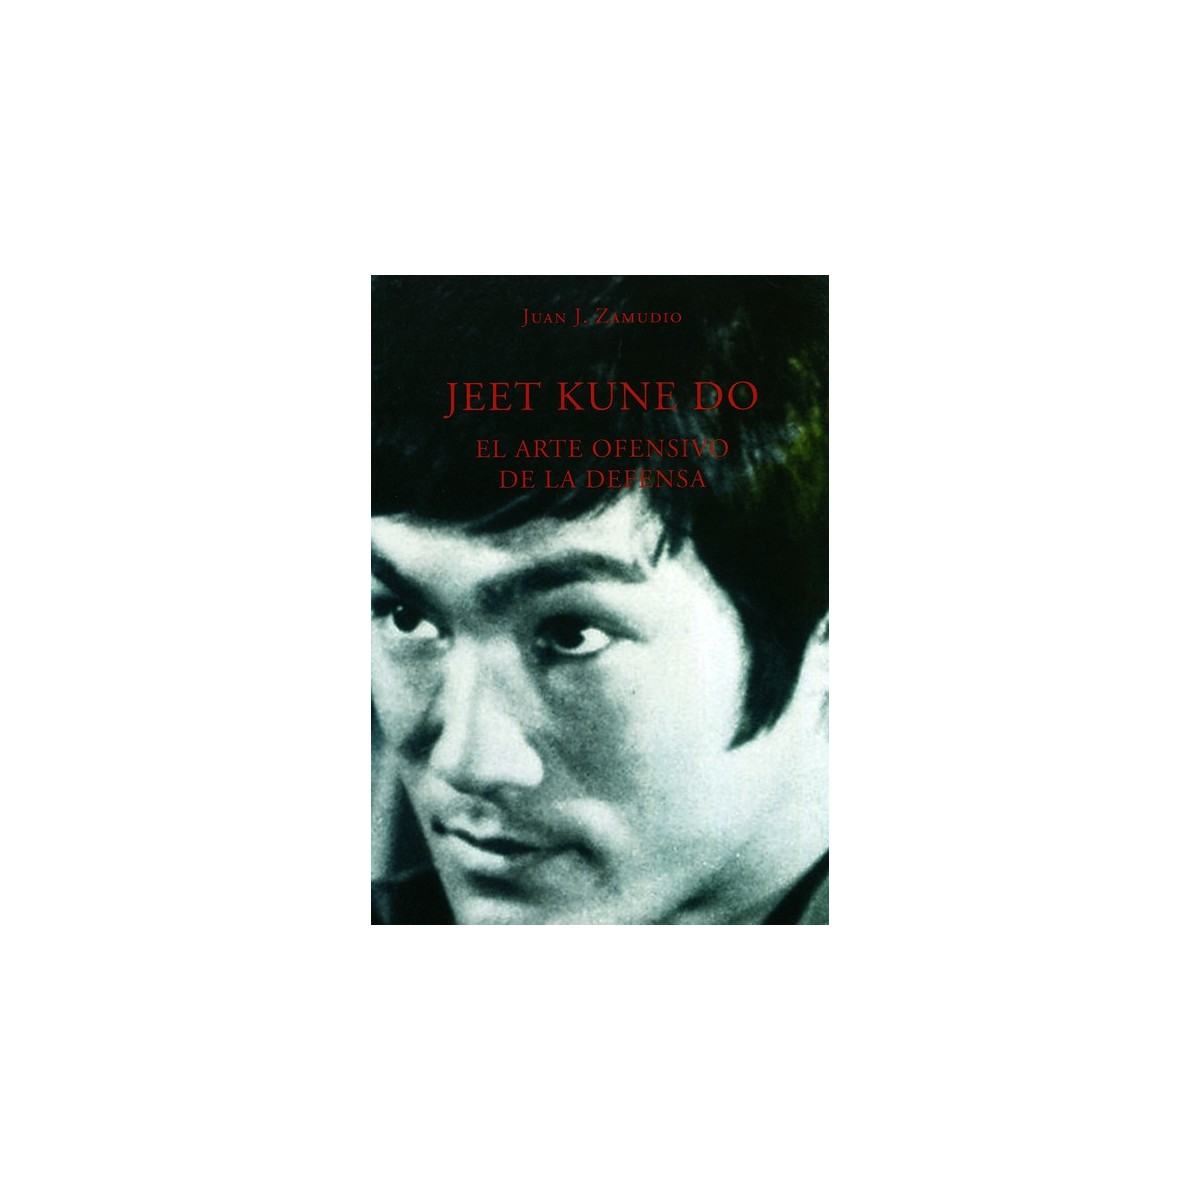 Bruce Lee Libros Libro Jeet Kune Do Arte Ofensivo De Defensa